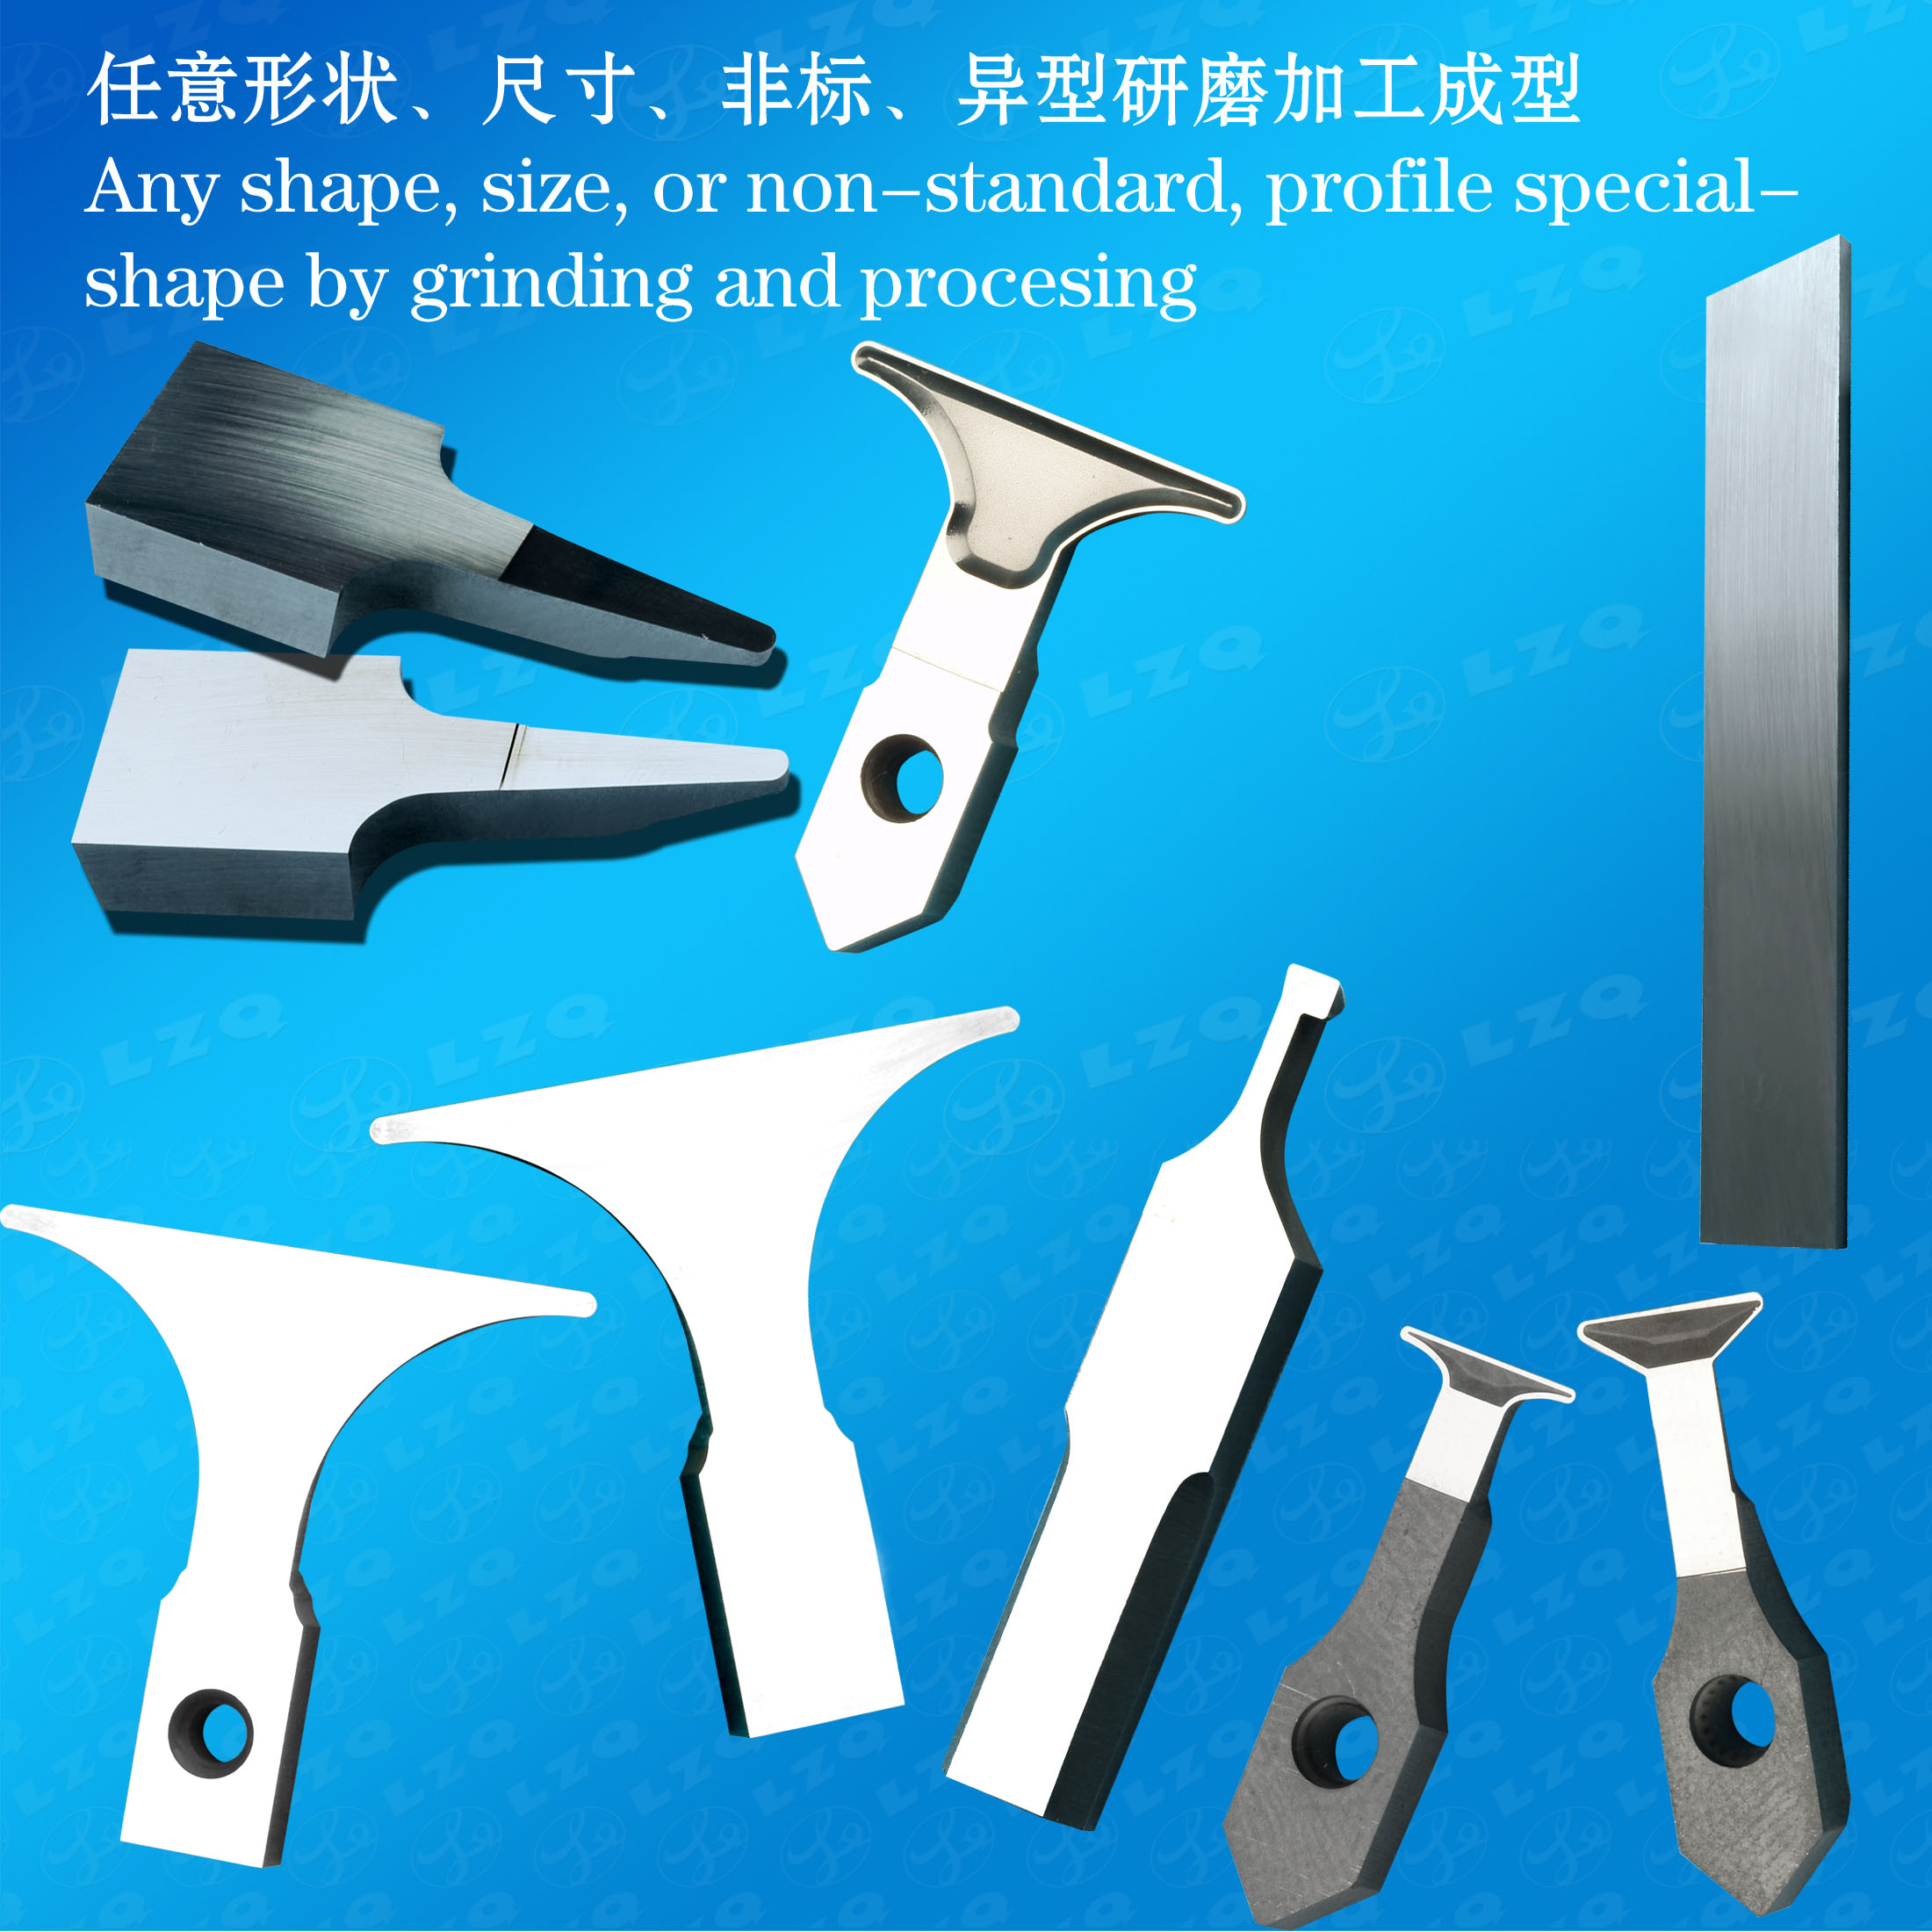 Turning Tool With Hole, Carbide Turning Tool With Hole, Hard Alloy Turning Tool With Hole